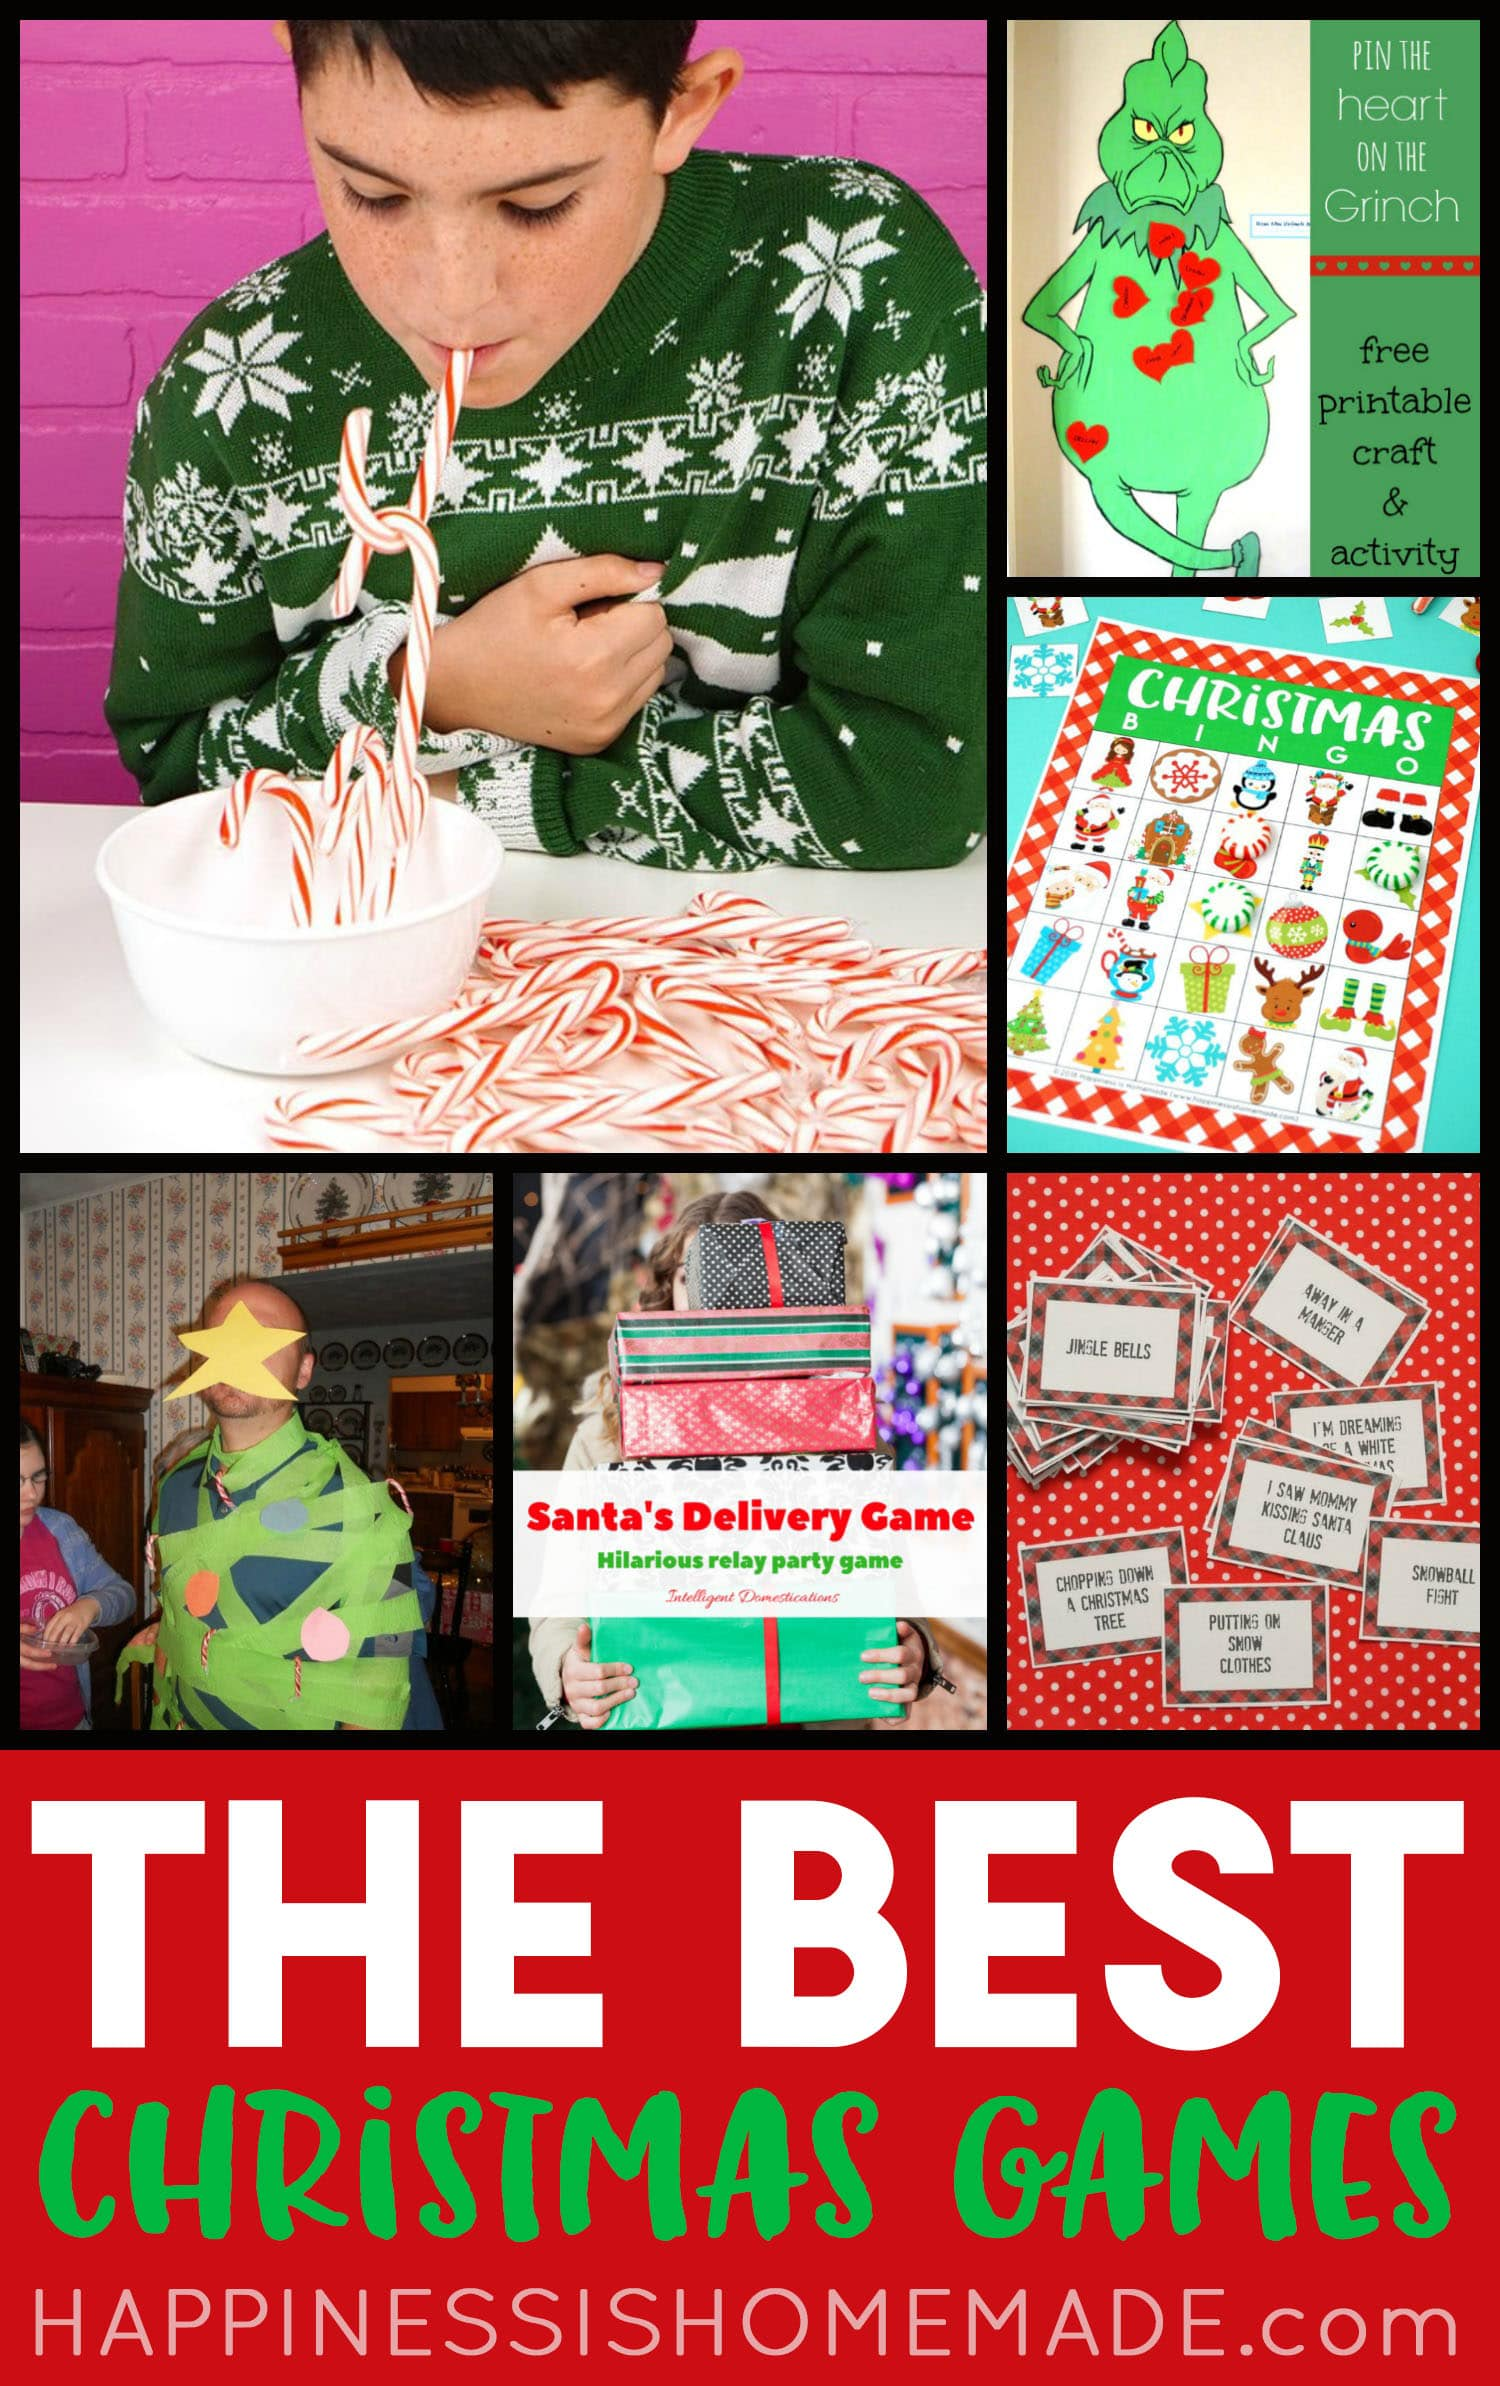 The Best Christmas Games collage